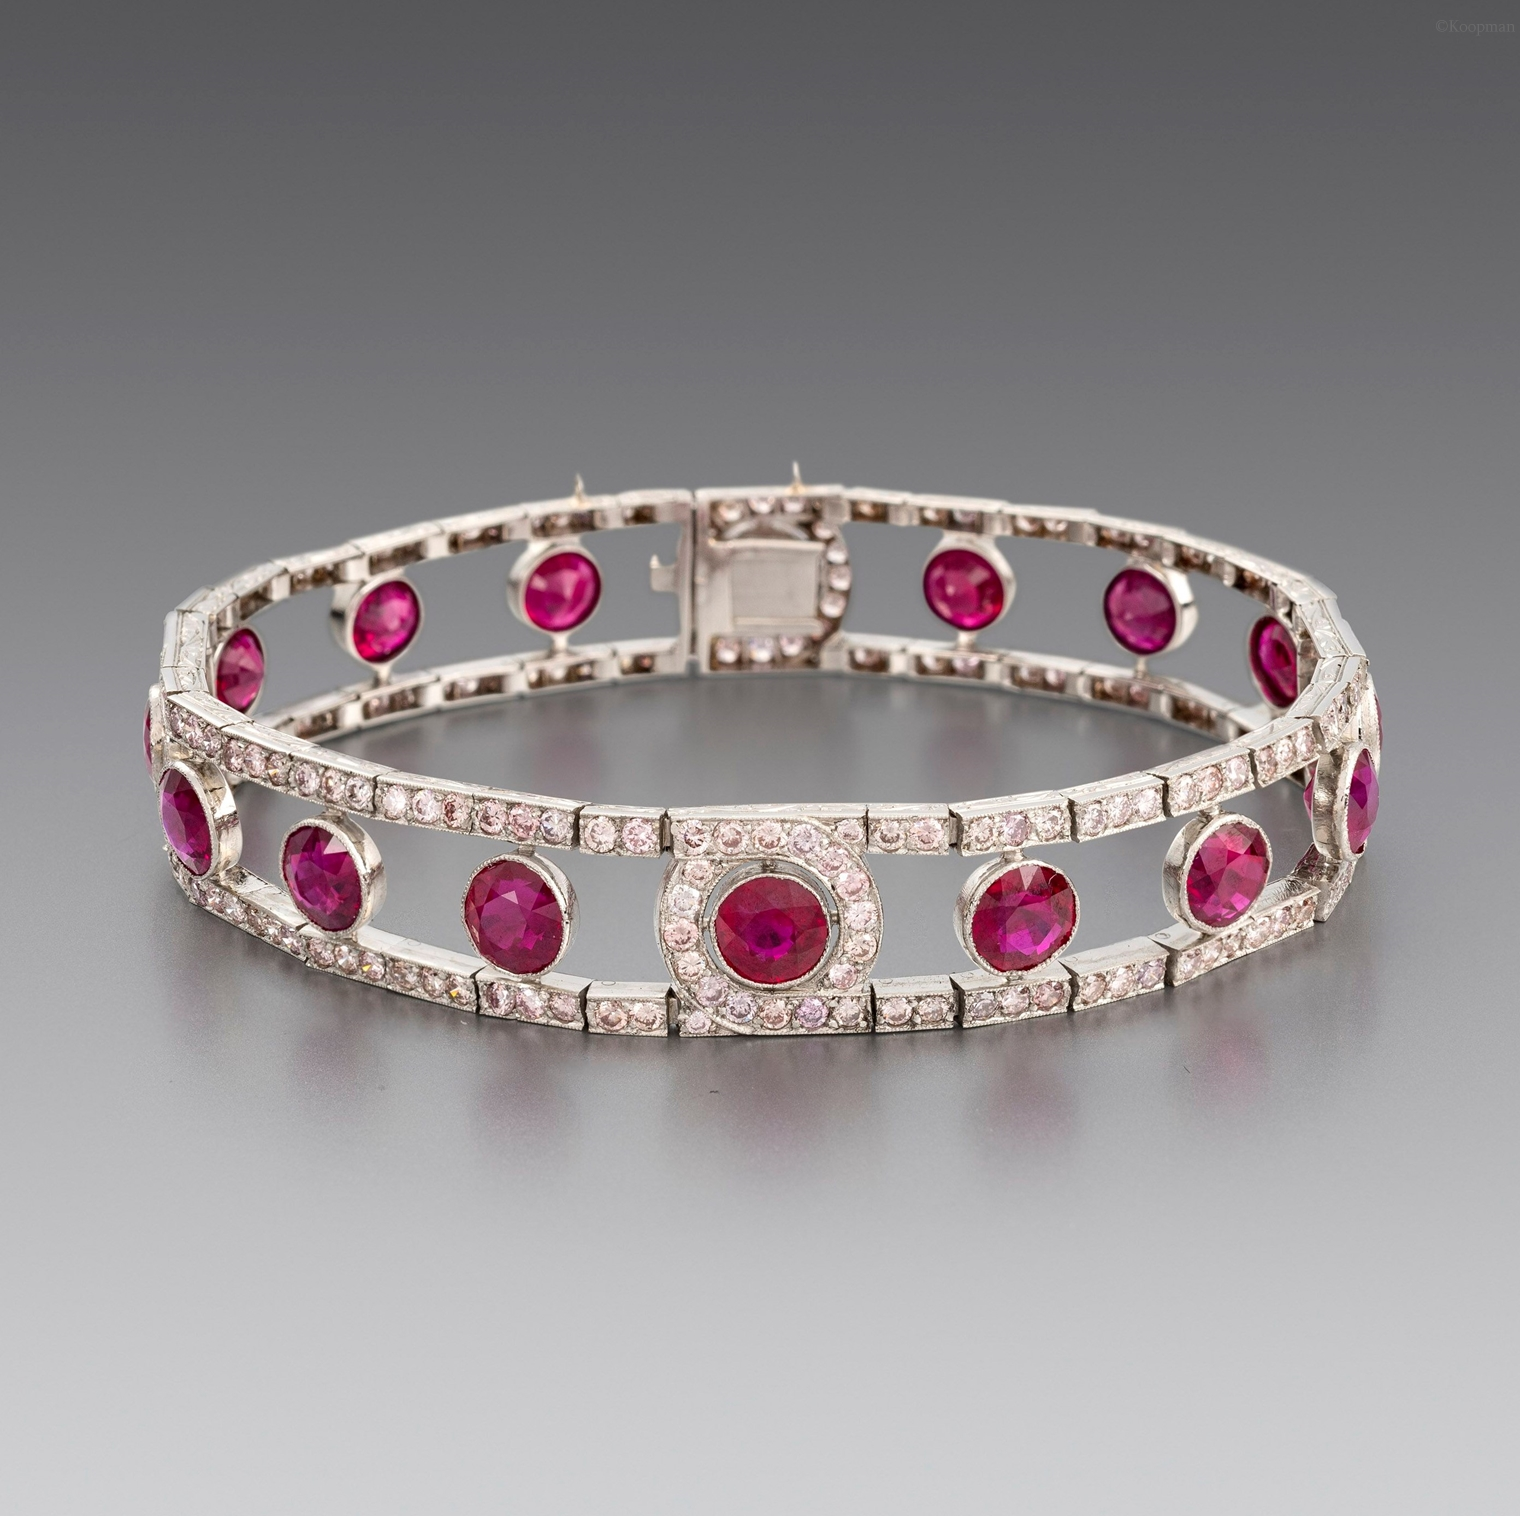 A Burmese Ruby and Diamond Bracelet